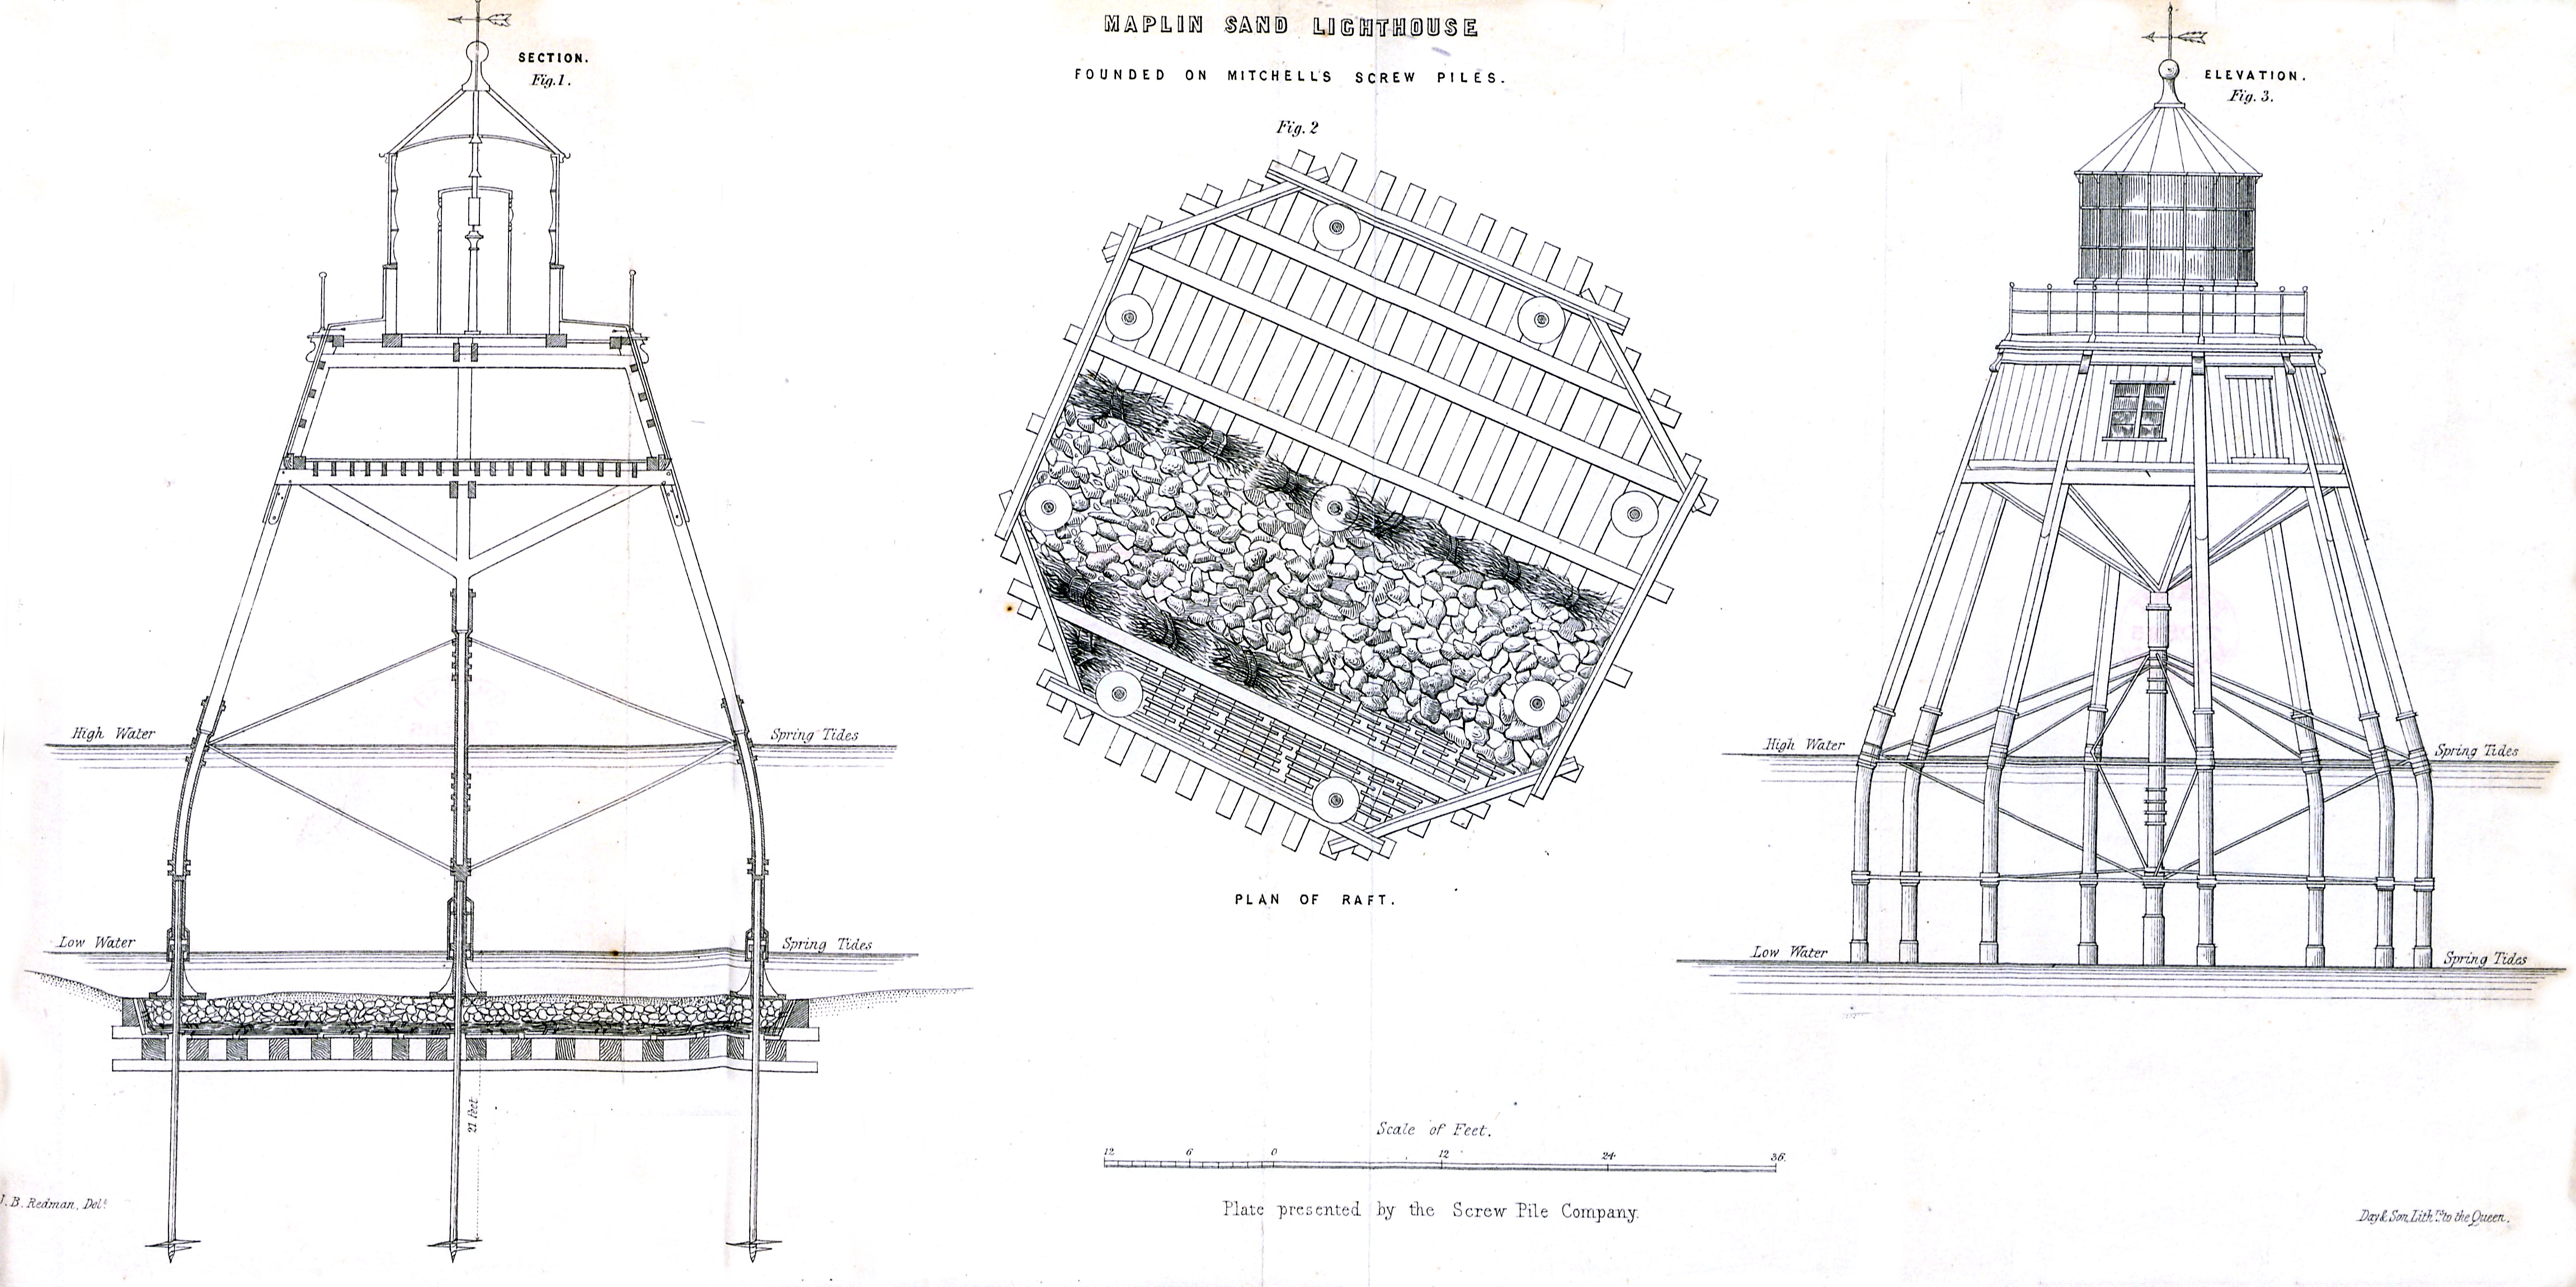 File Maplin Sands Lighthouse Founded On Mitchells Screw